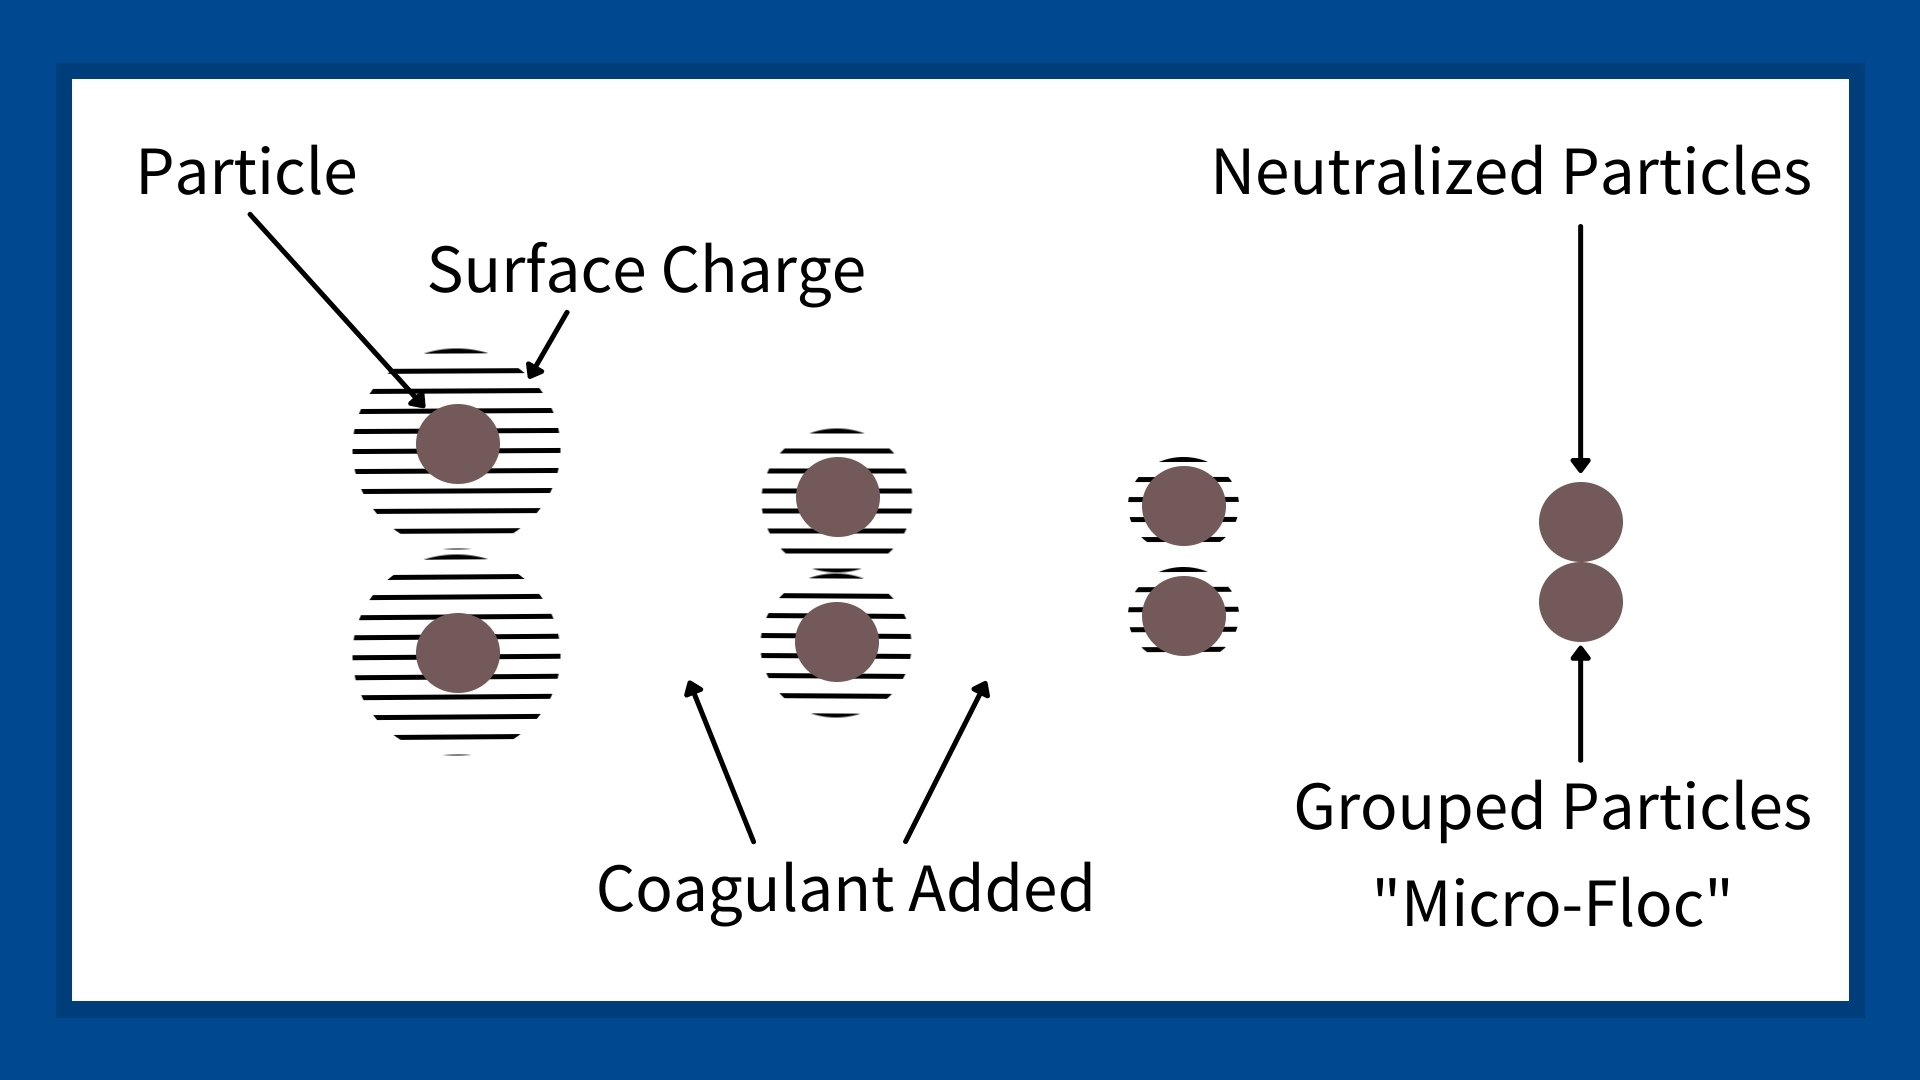 This image shows negatively charged liquid-suspended particles being neutralized with a coagulant. It shows how the particles slowly lose their negative charge and come together to form a larger particle.